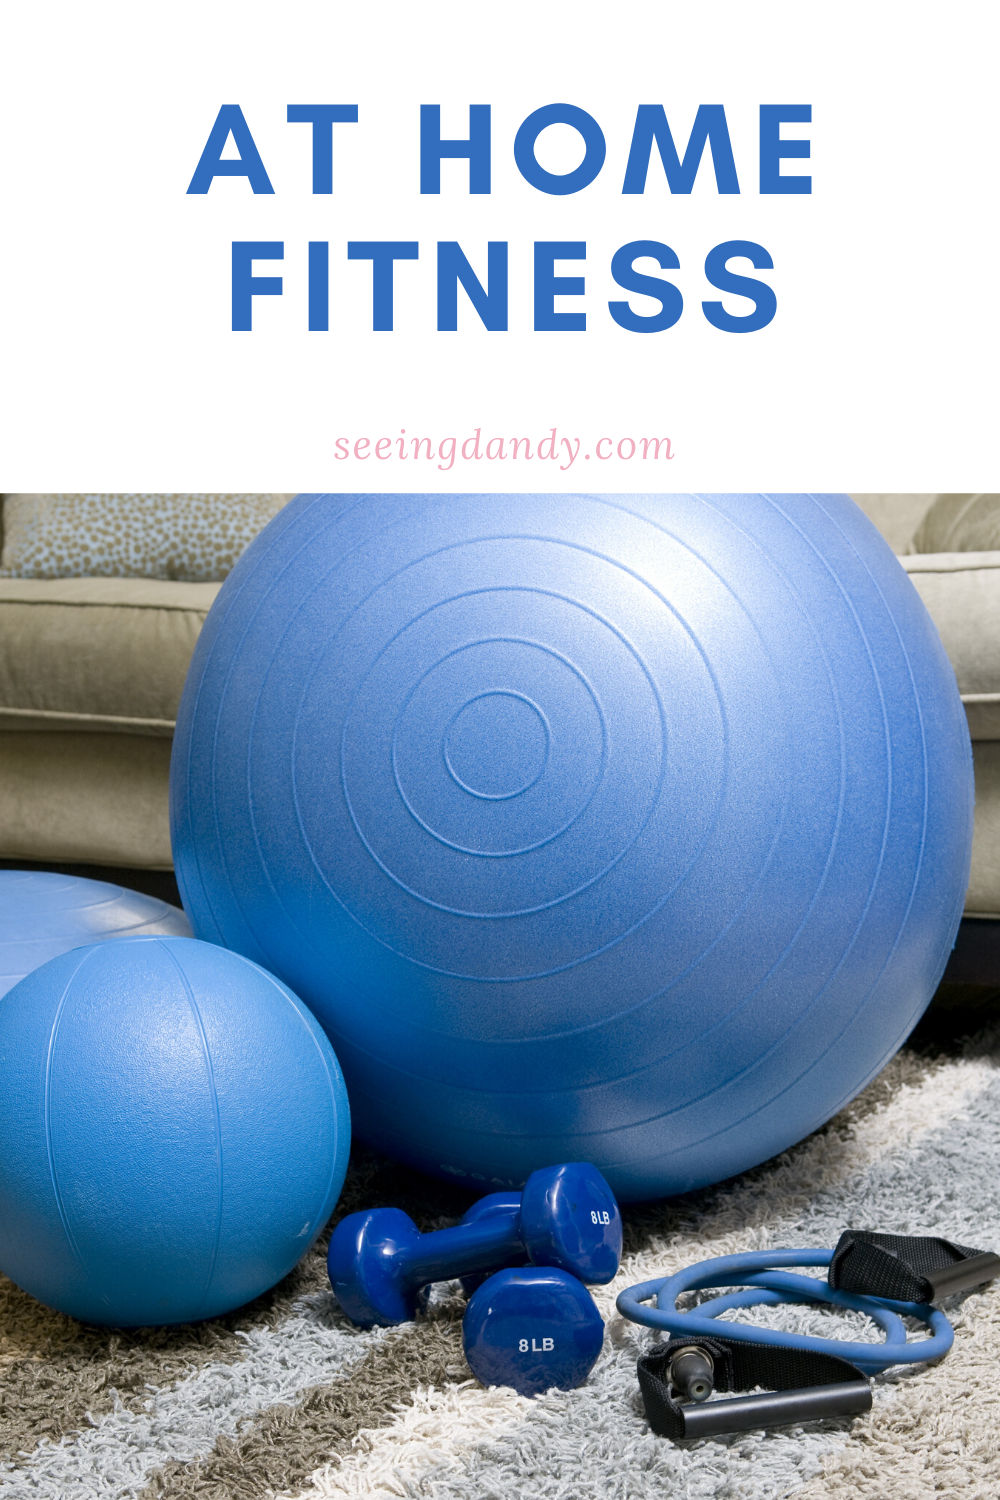 Easy home fitness ideas for doing during quarantine